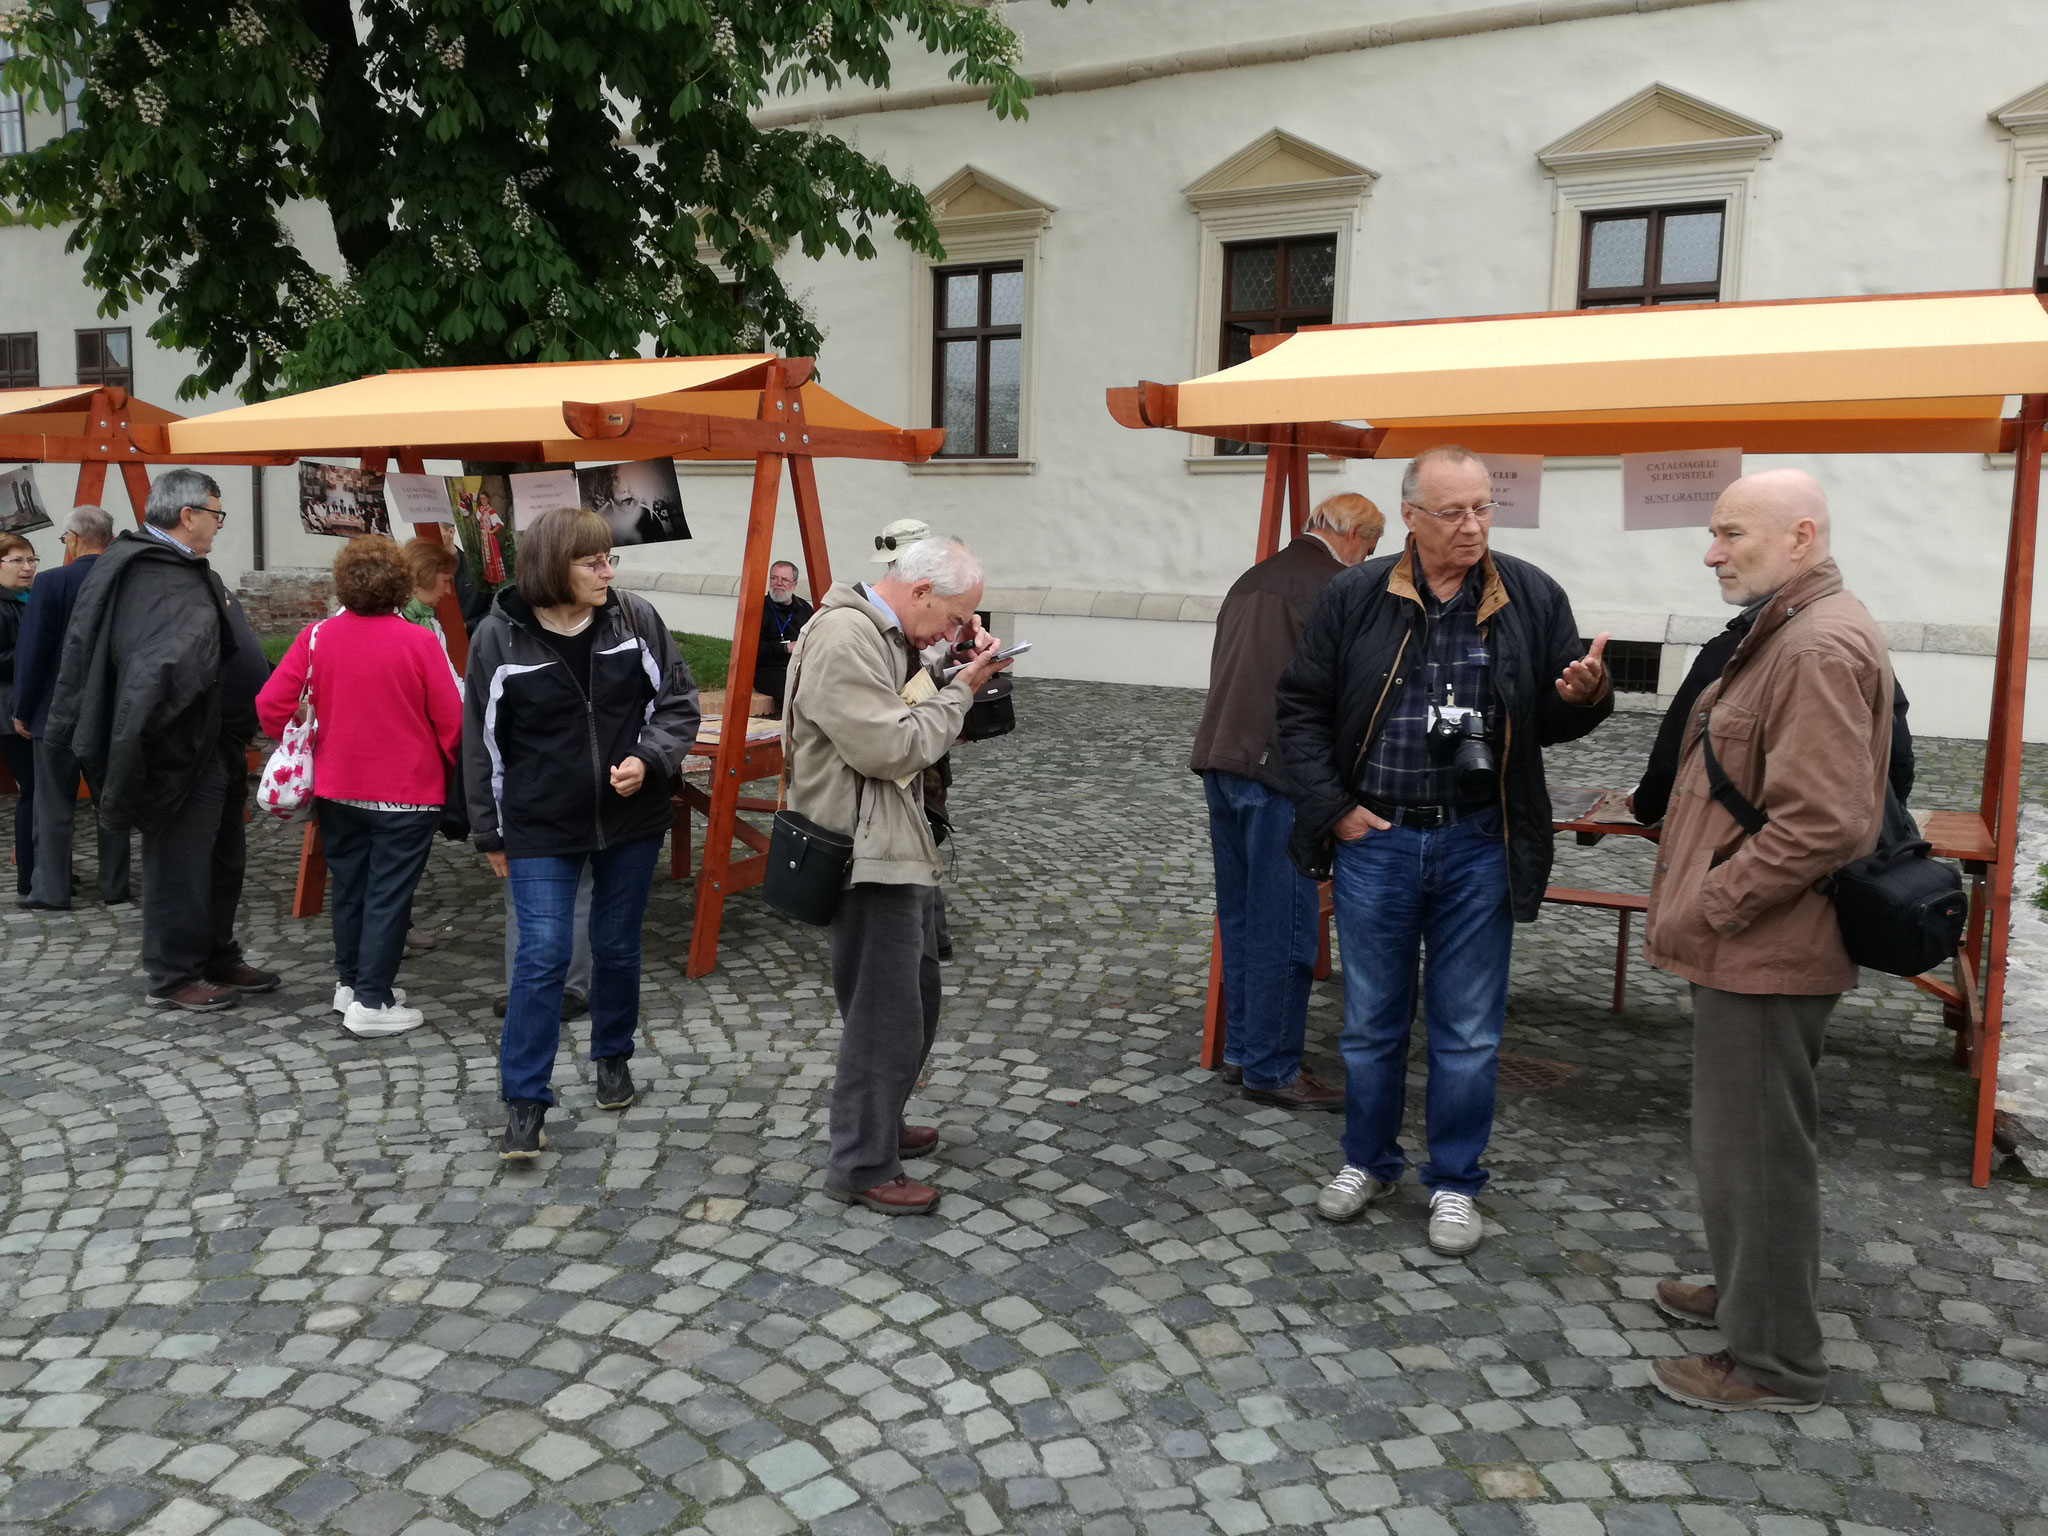 Ourdoor exhibitions in the courtyard of Oradea fortress